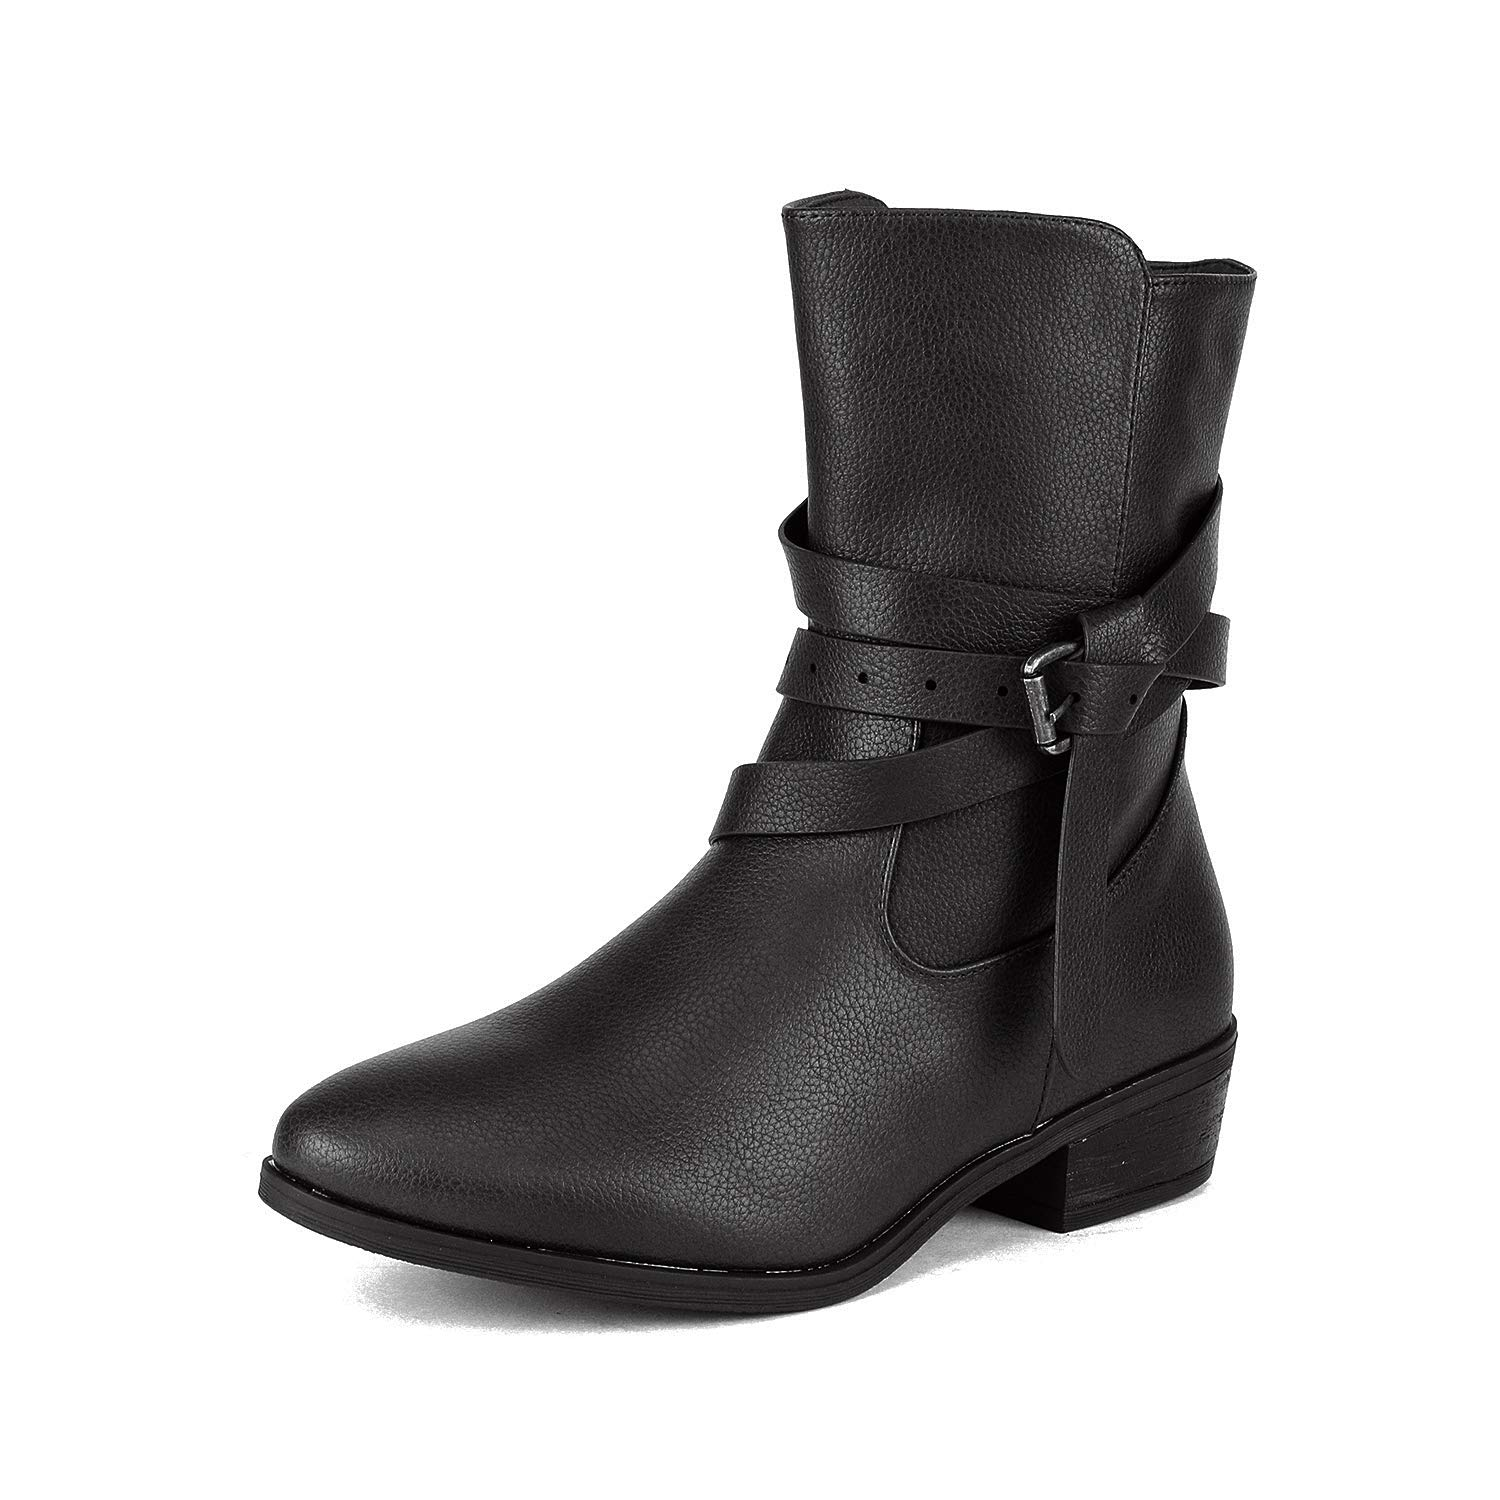 DREAM PAIRS Womens Zipper Bootie